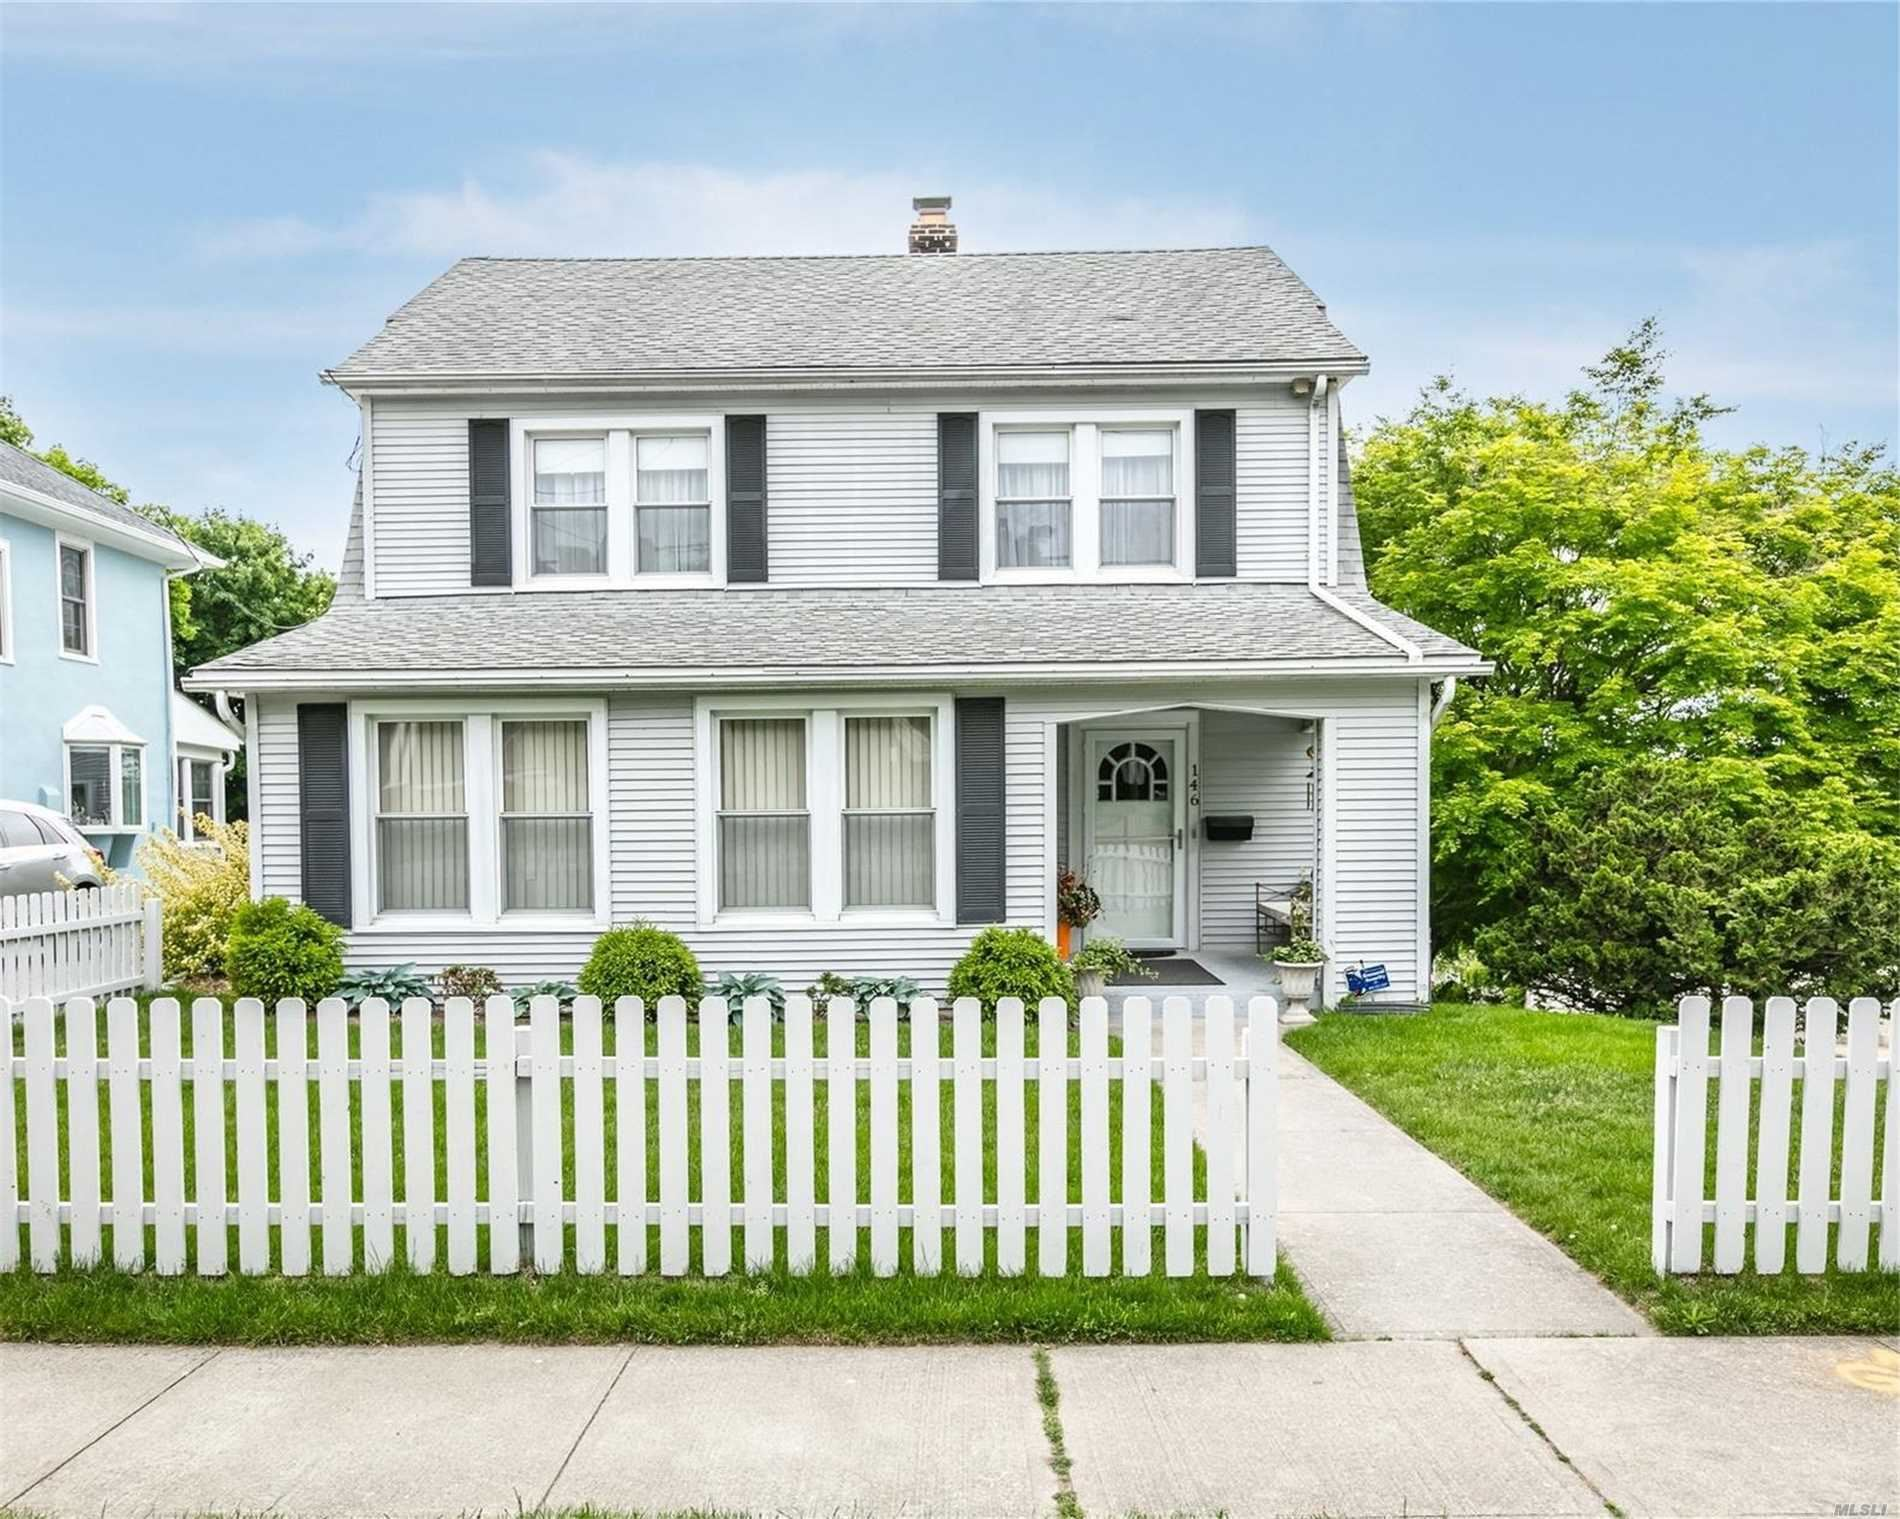 Photo of 146 Anstice Street, Oyster Bay, NY 11771 (MLS # 3219613)